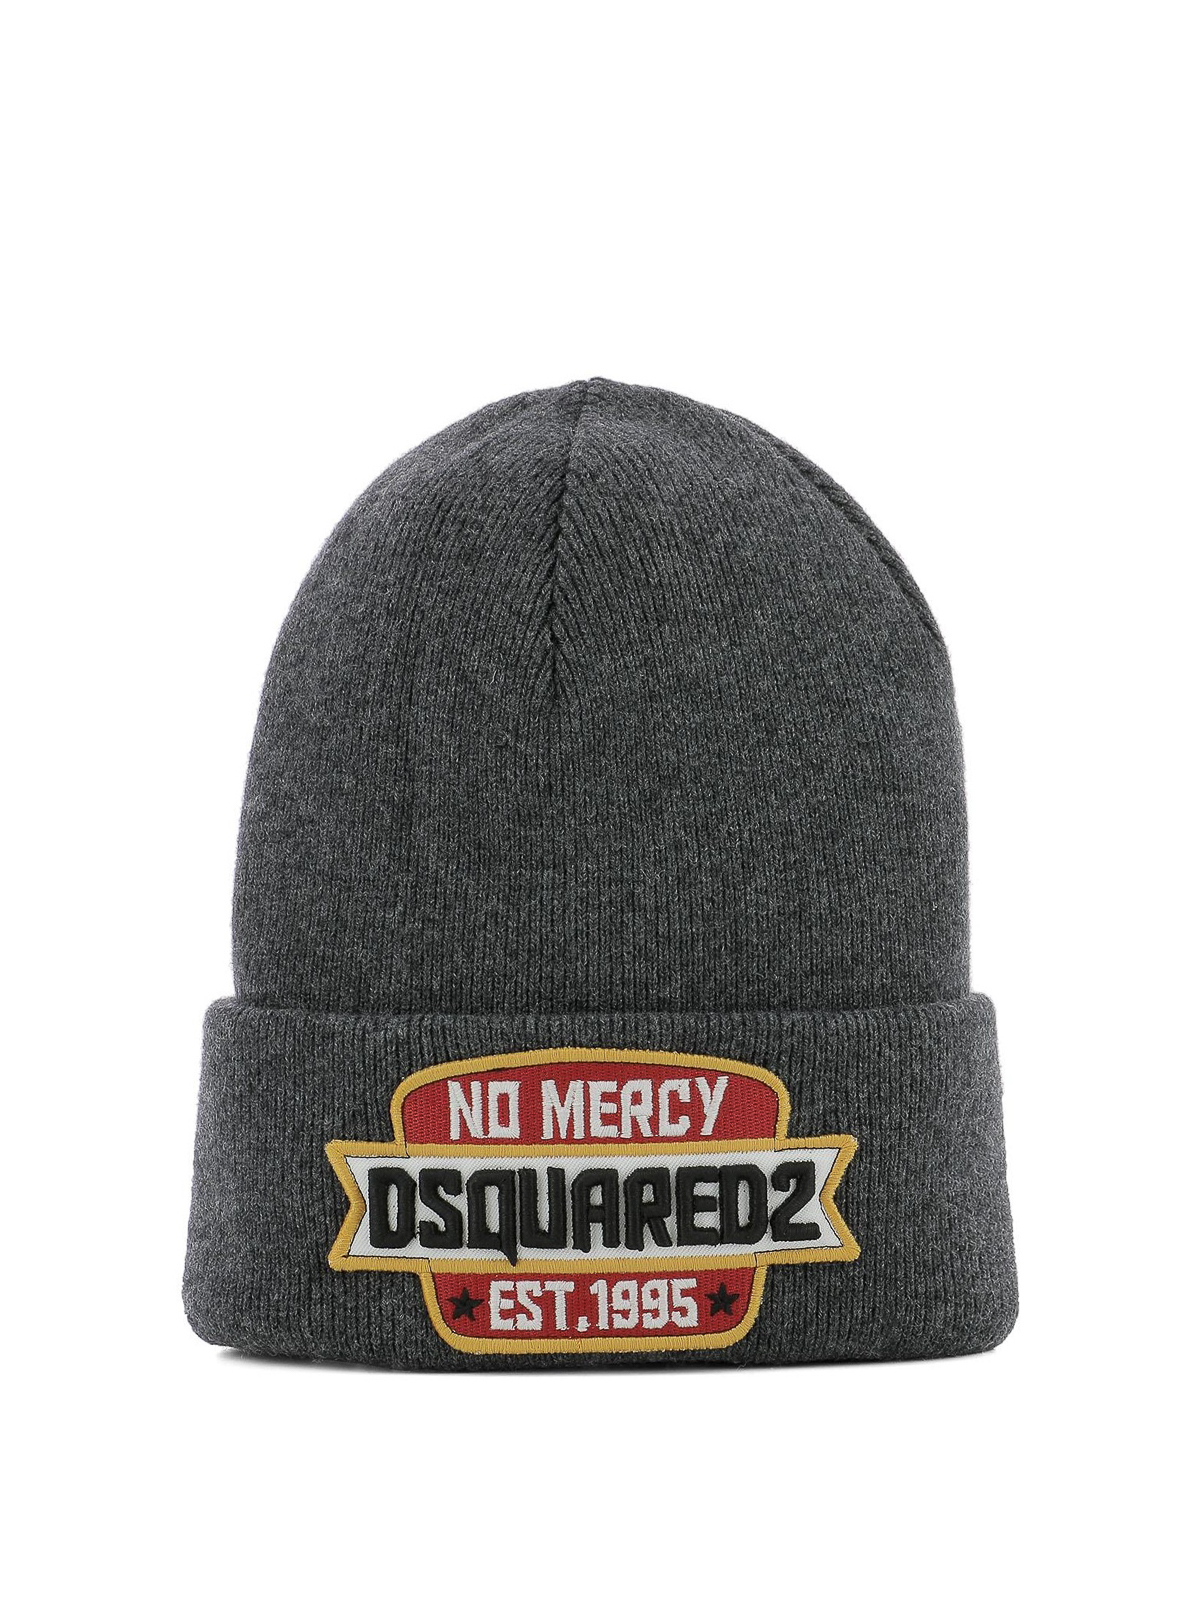 7af85a70225 Dsquared2 - Logo patch grey ribbed wool beanie - beanies ...